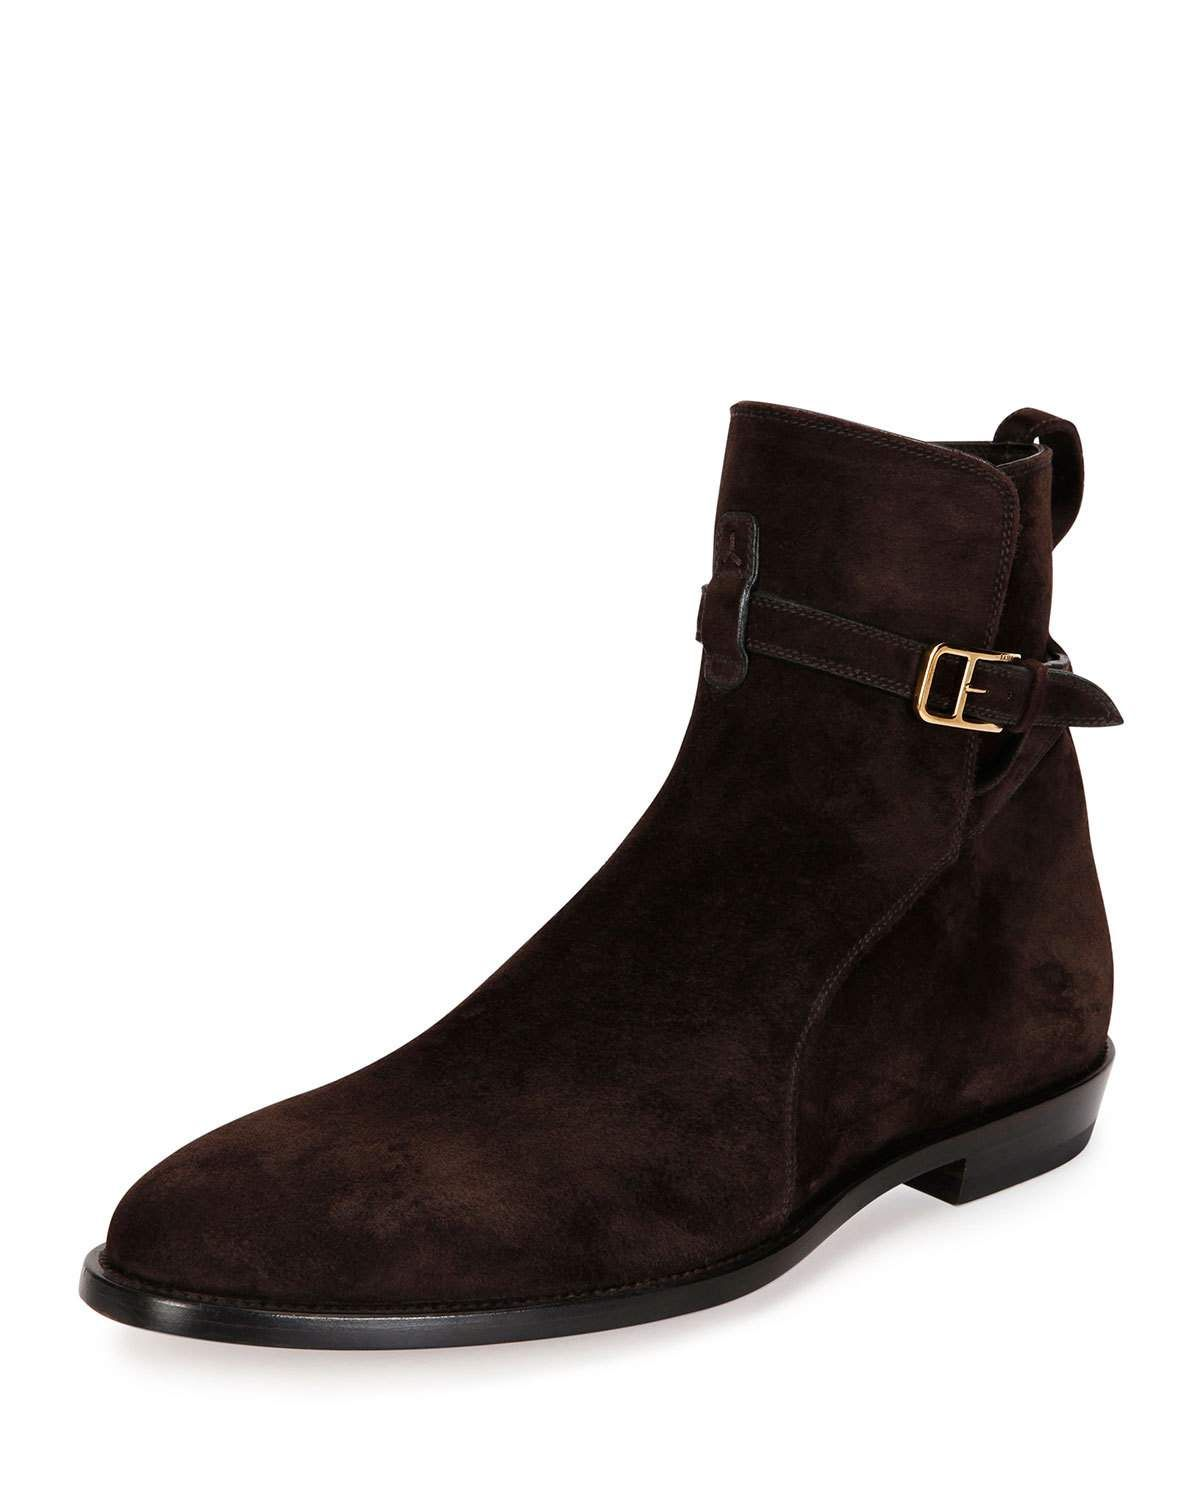 f500c4d8e4587 Bally Hobston Suede Jodhpur Ankle Boot, Brown | Shop gift ideas ...